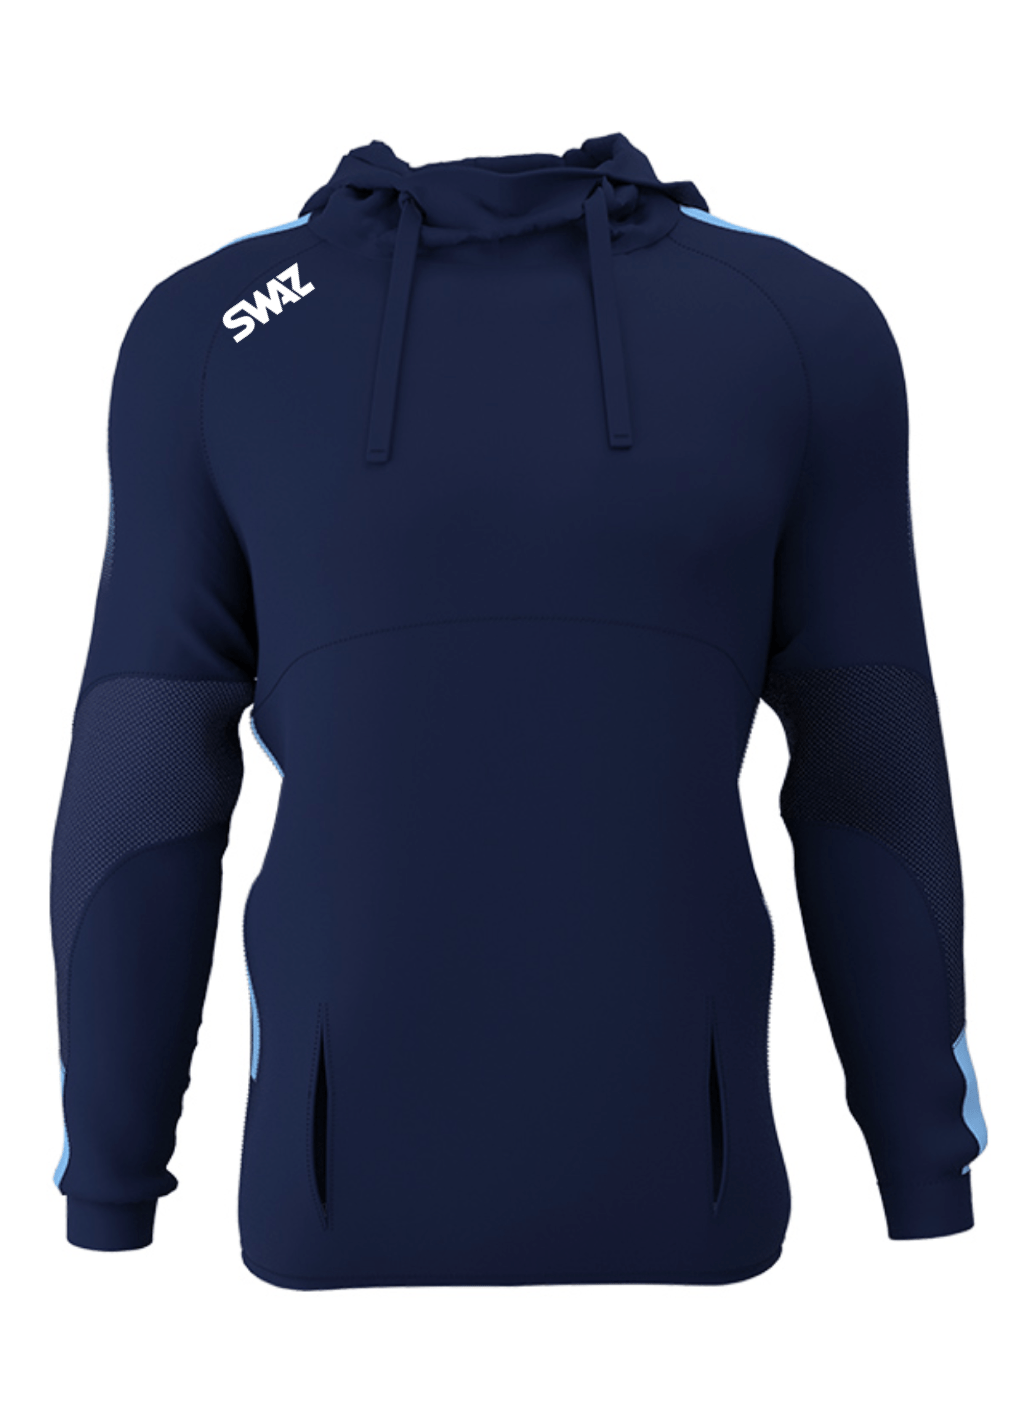 Youth Football Hoody